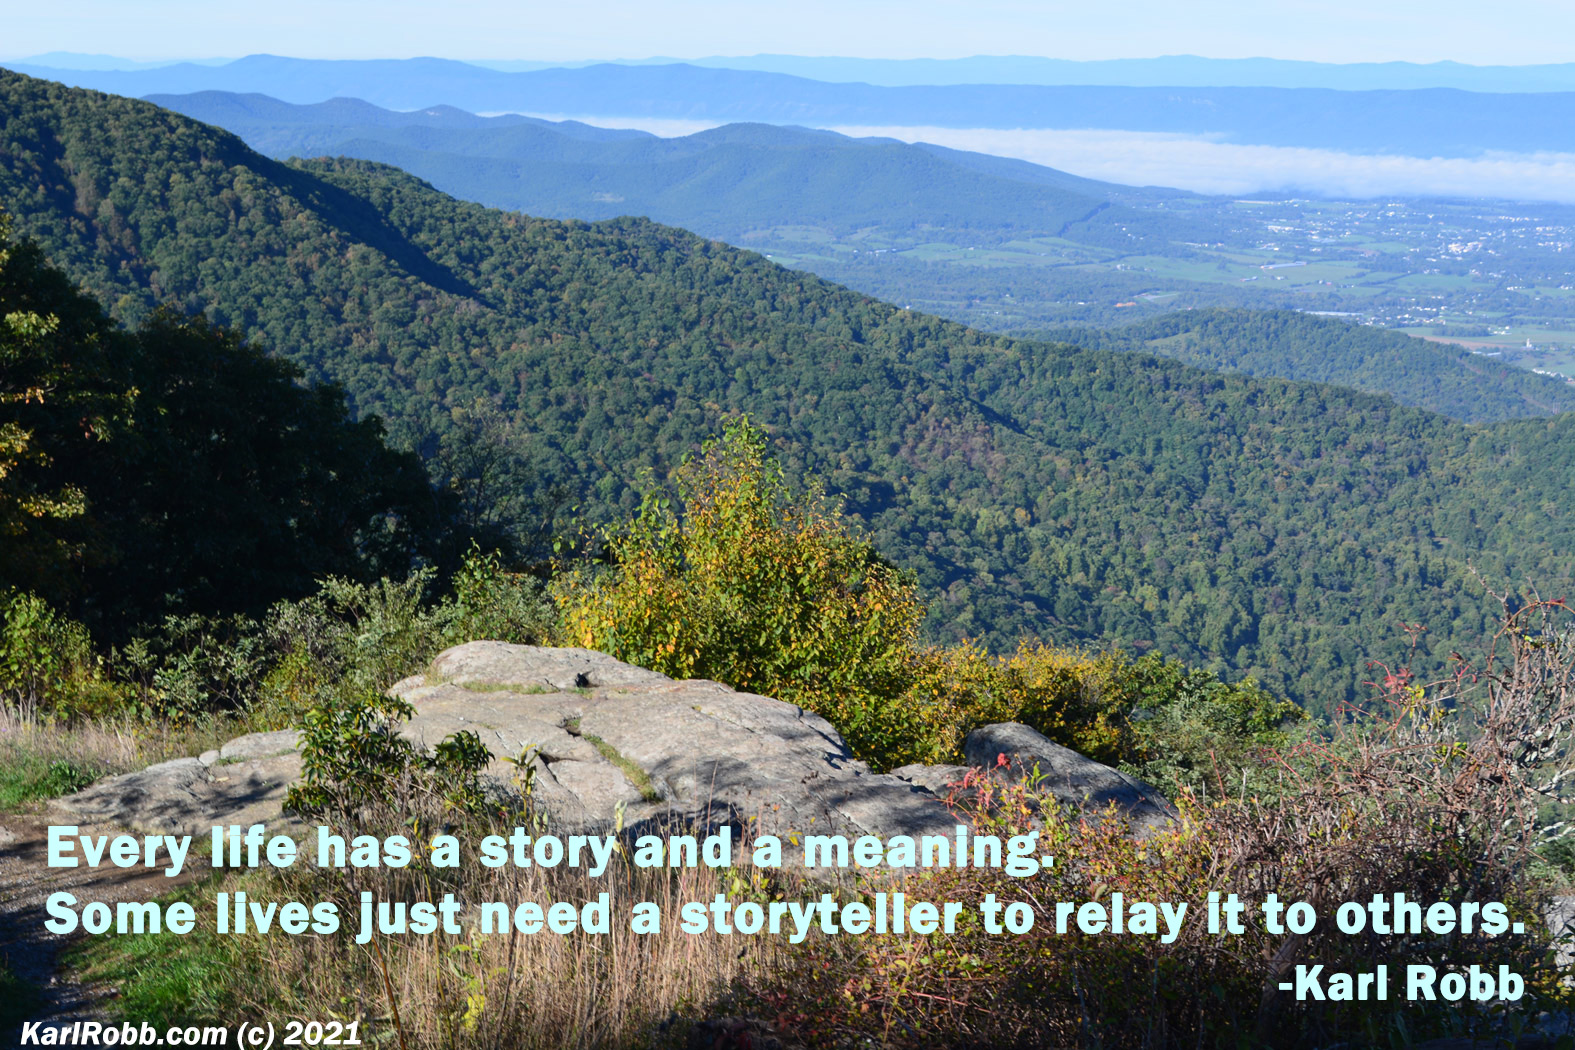 A picture of the Shenandoah Valley by Karl Robb Every life has a story and a meaning. Some lives just need a storyteller to relay it to others. Karl Robb quote